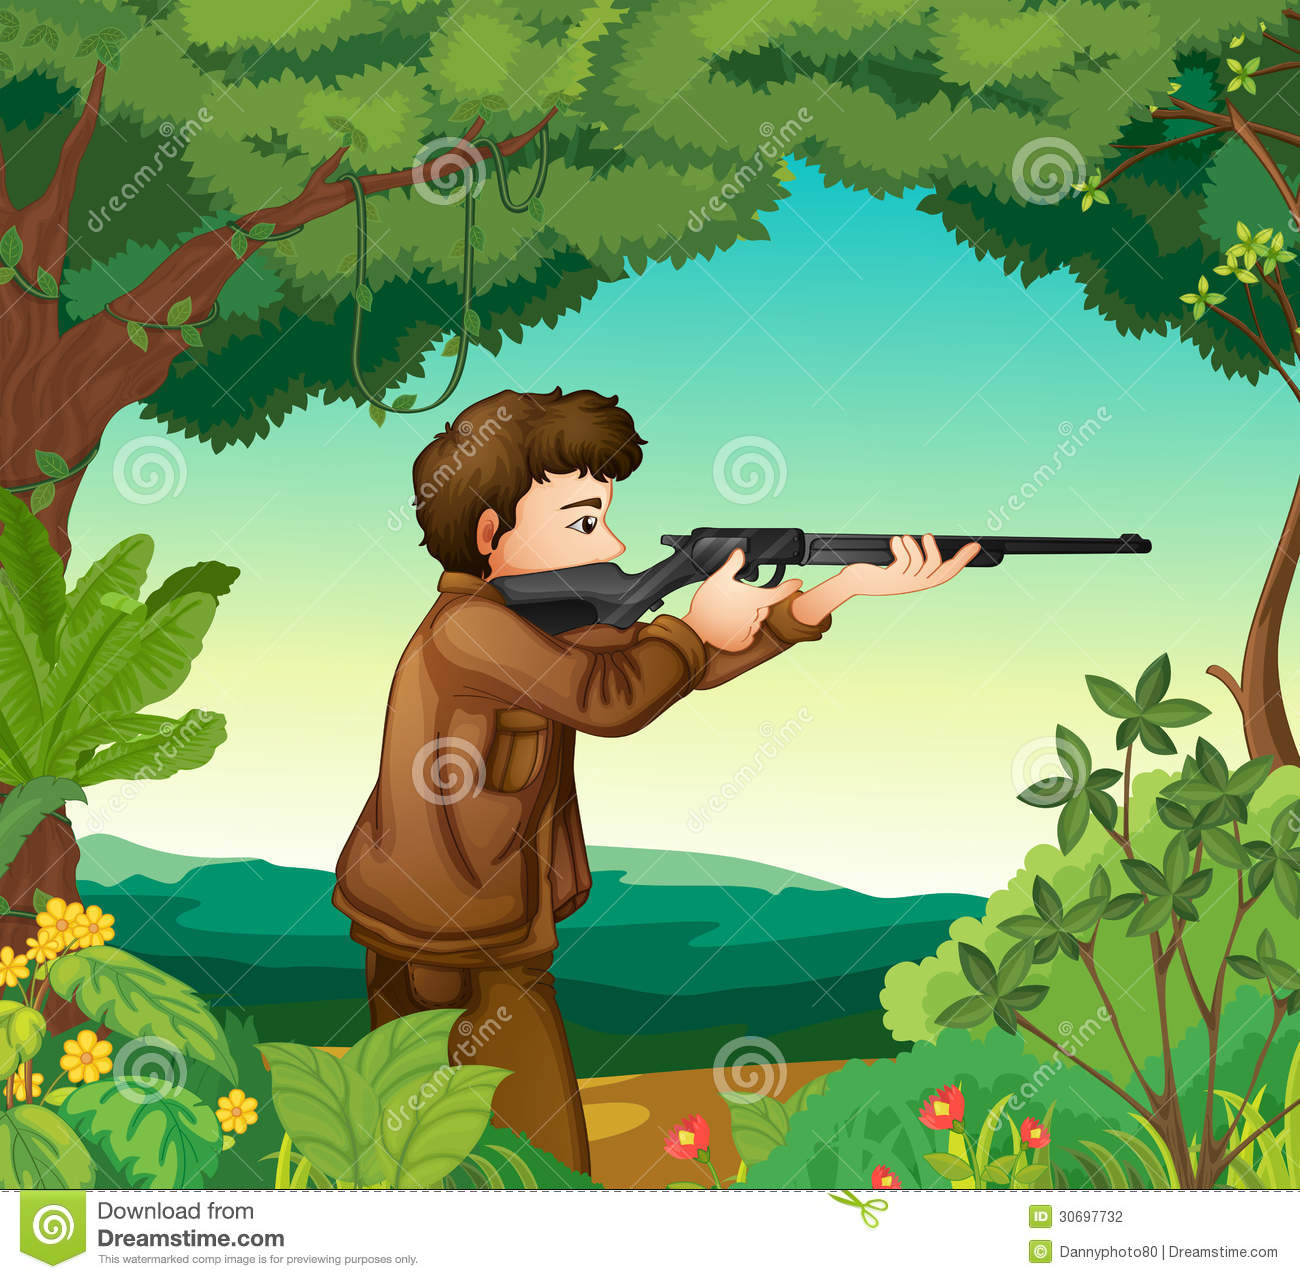 A Boy With A Gun Inside The Forest Stock Vector.